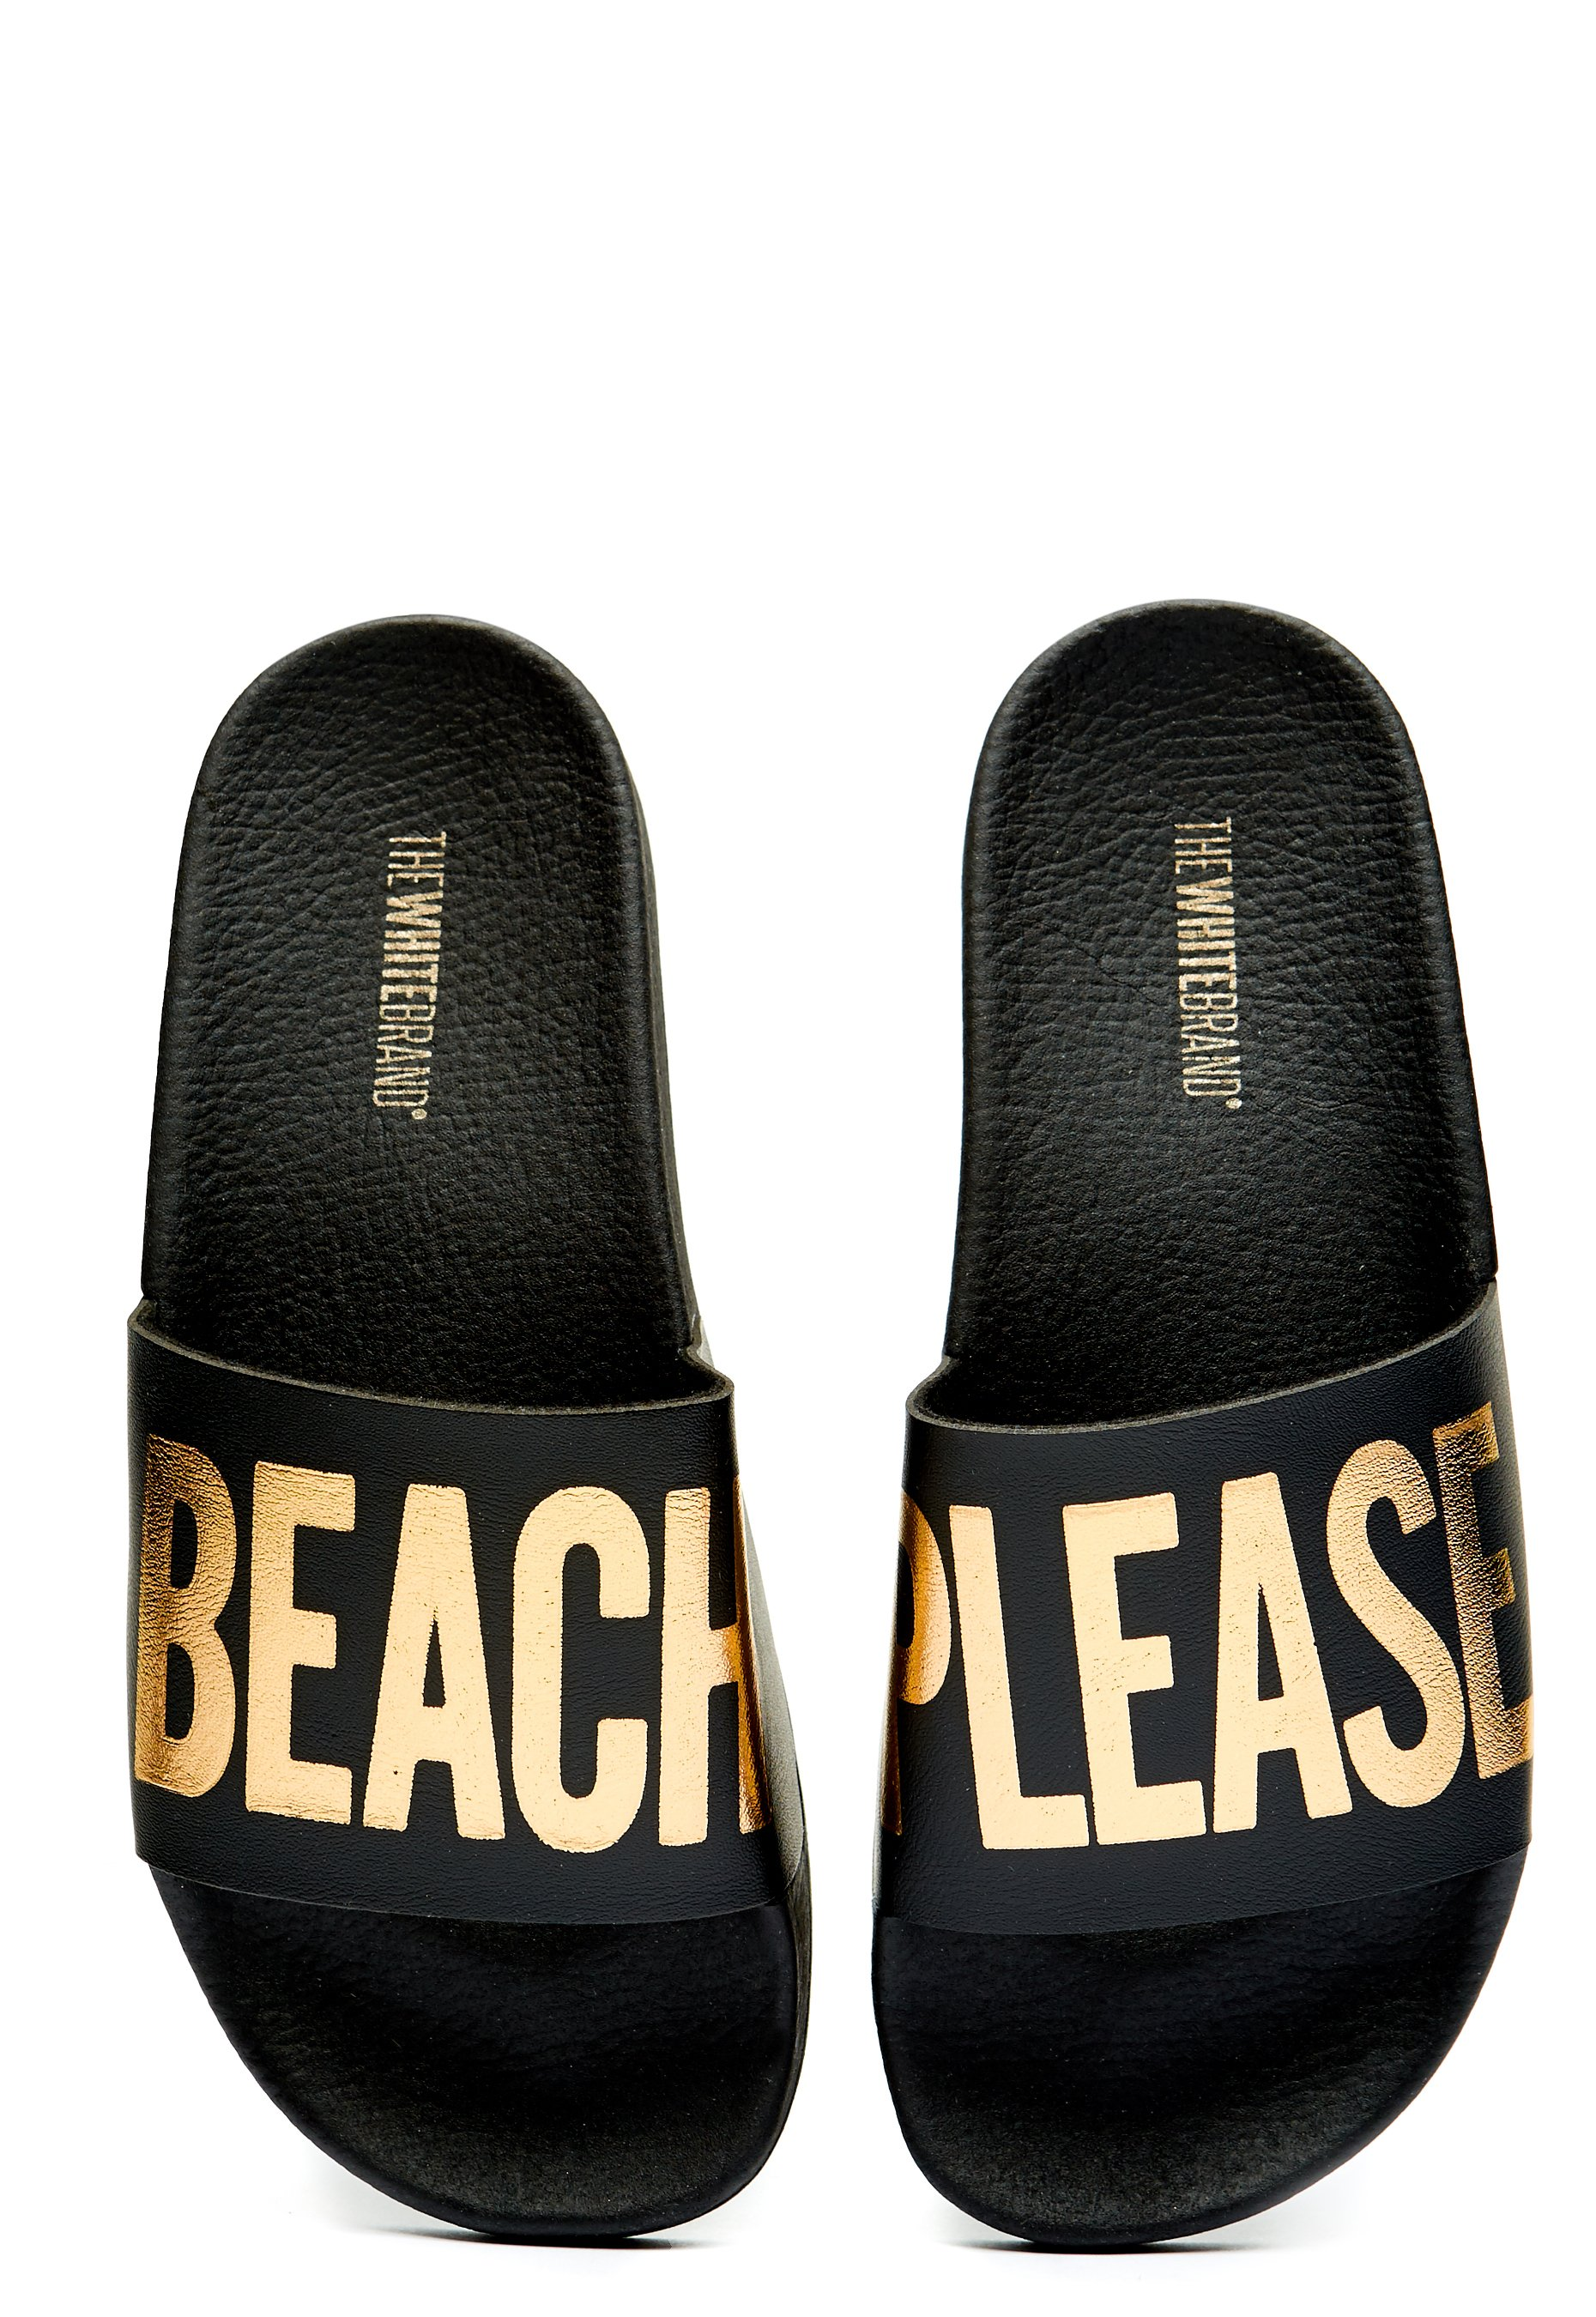 6b5dd99ff67f15 The White Brand Beach Please Slippers Black - Bubbleroom